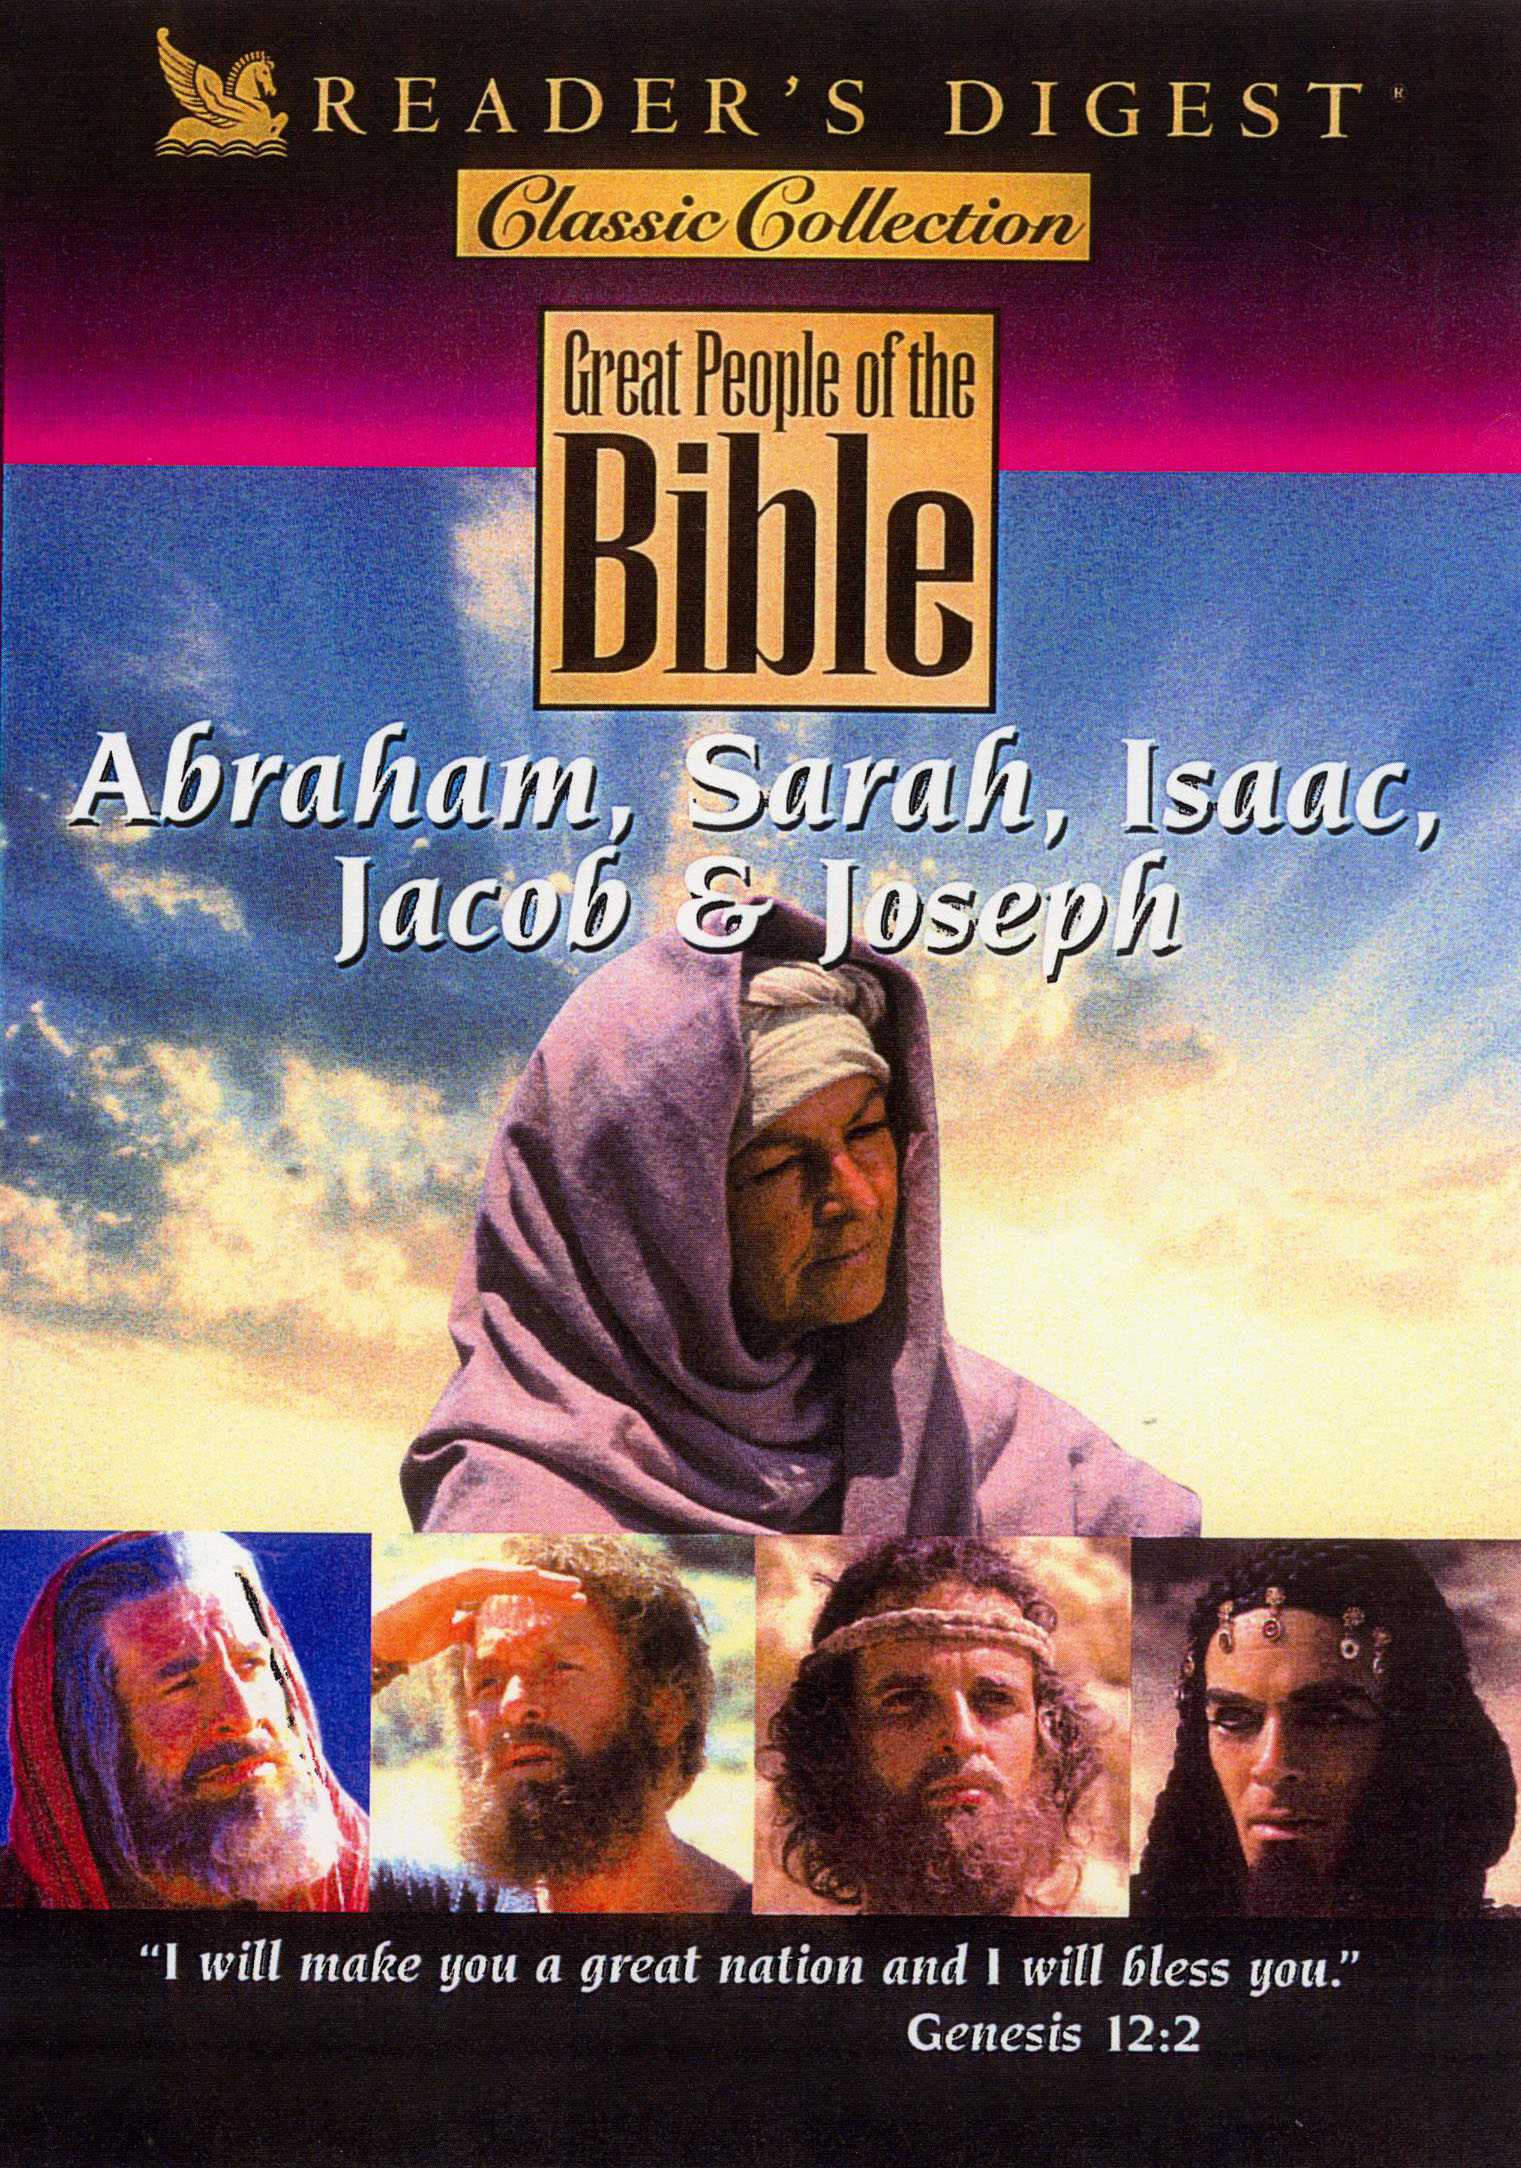 Reader's Digest: Great People of the Bible - Abraham, Sarah, Isaac, Jacob & Joseph